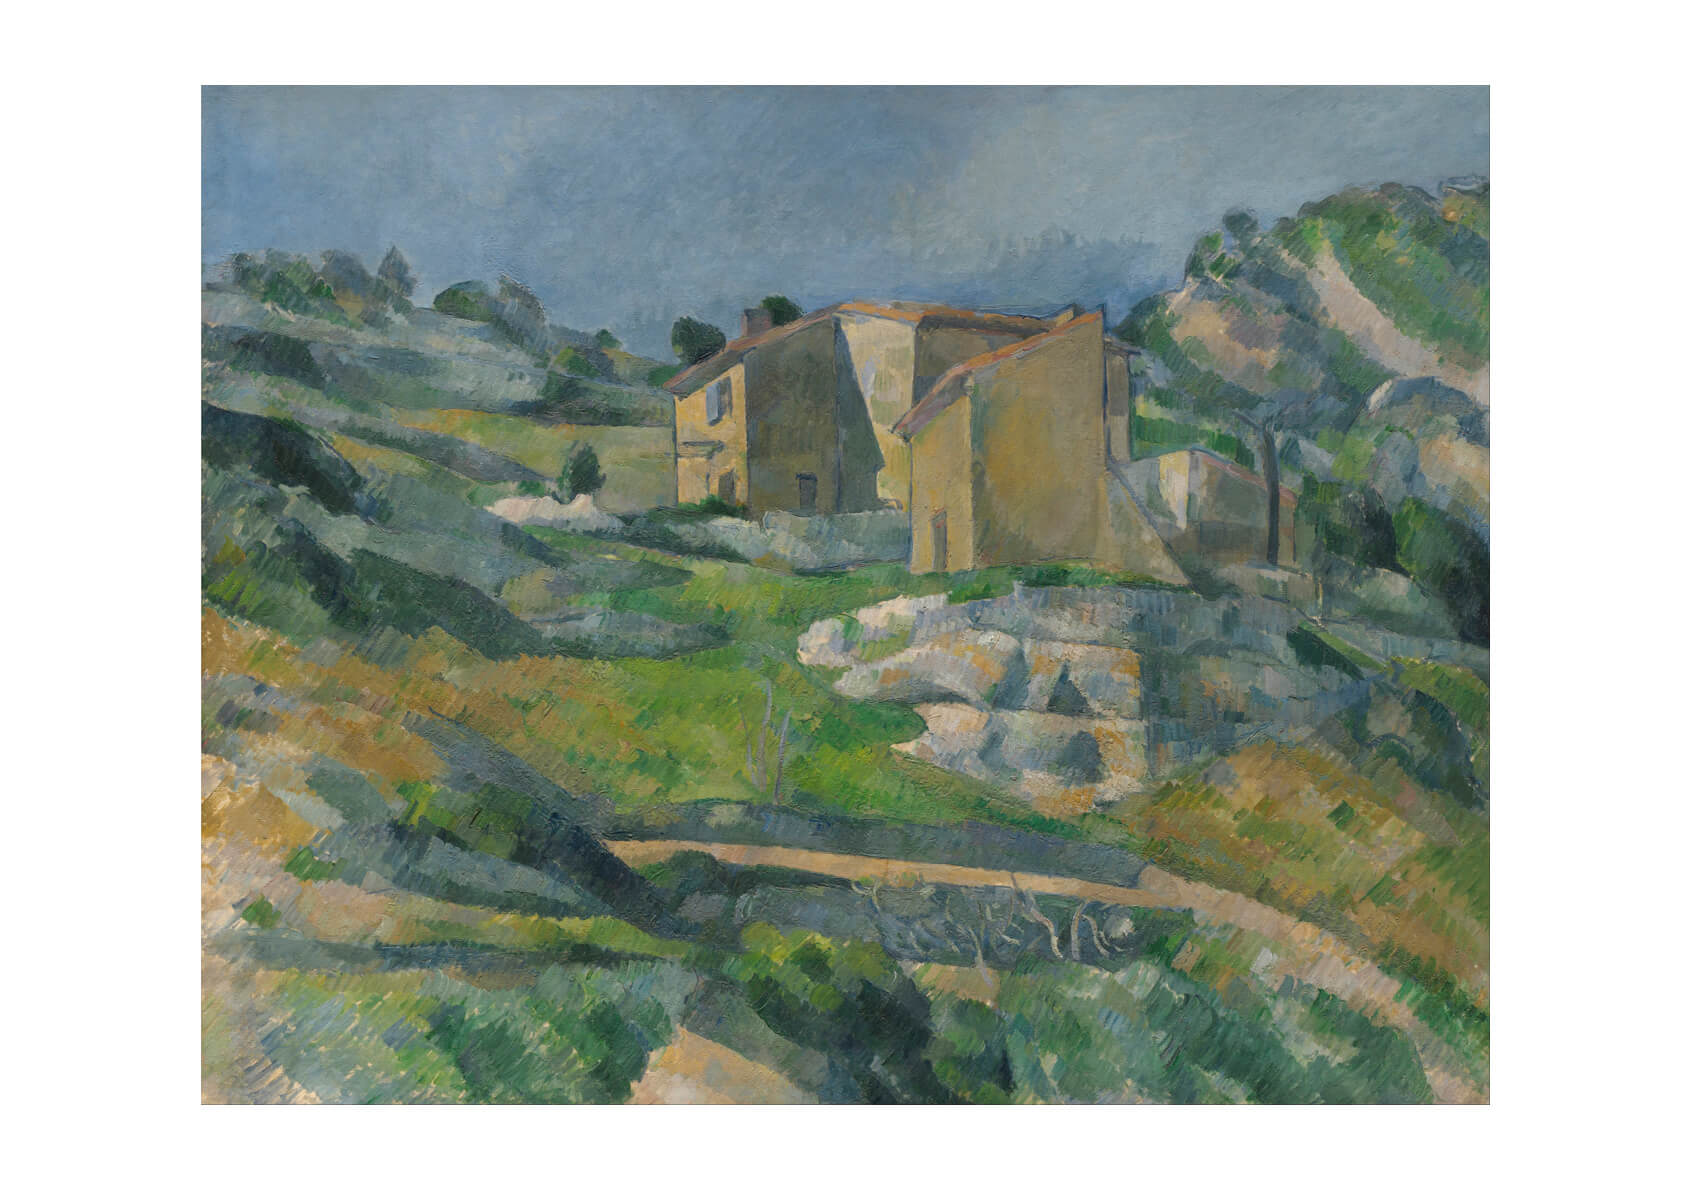 Paul Cezanne - Houses in Provence- The Riaux Valley near L'Estaque